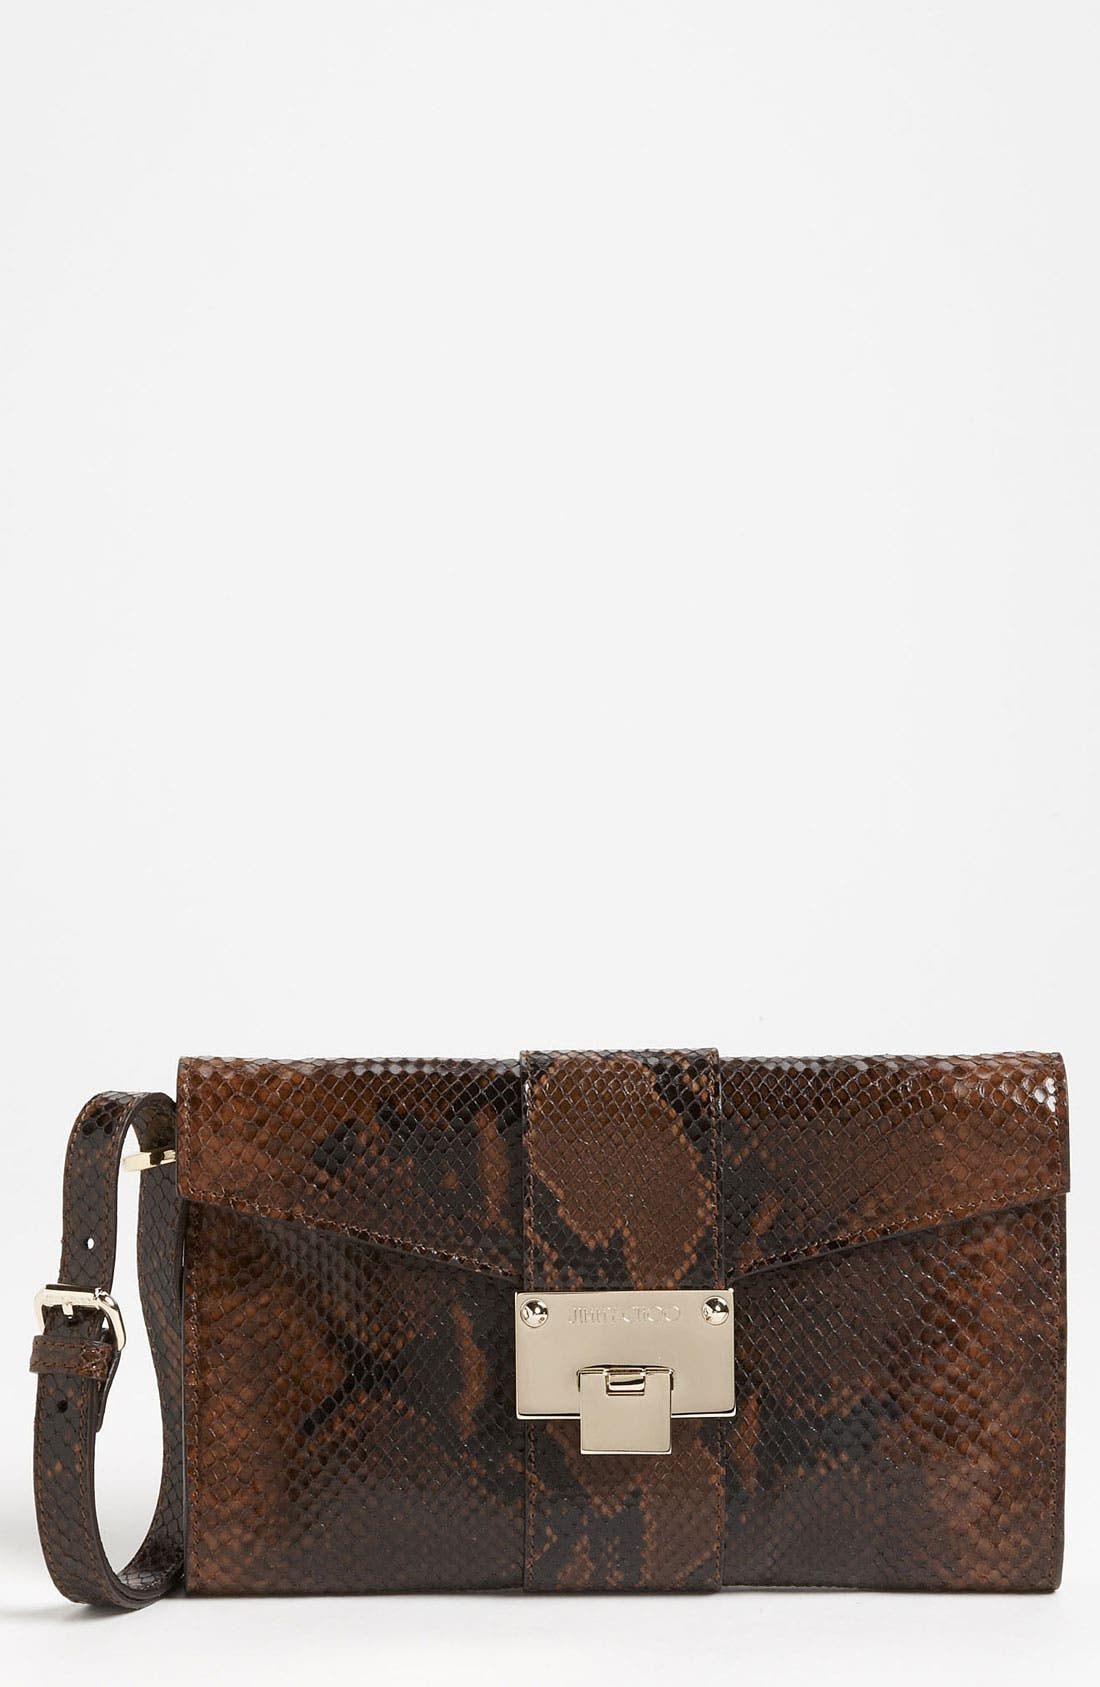 Alternate Image 1 Selected - Jimmy Choo 'Rivera - Small' Leather Clutch